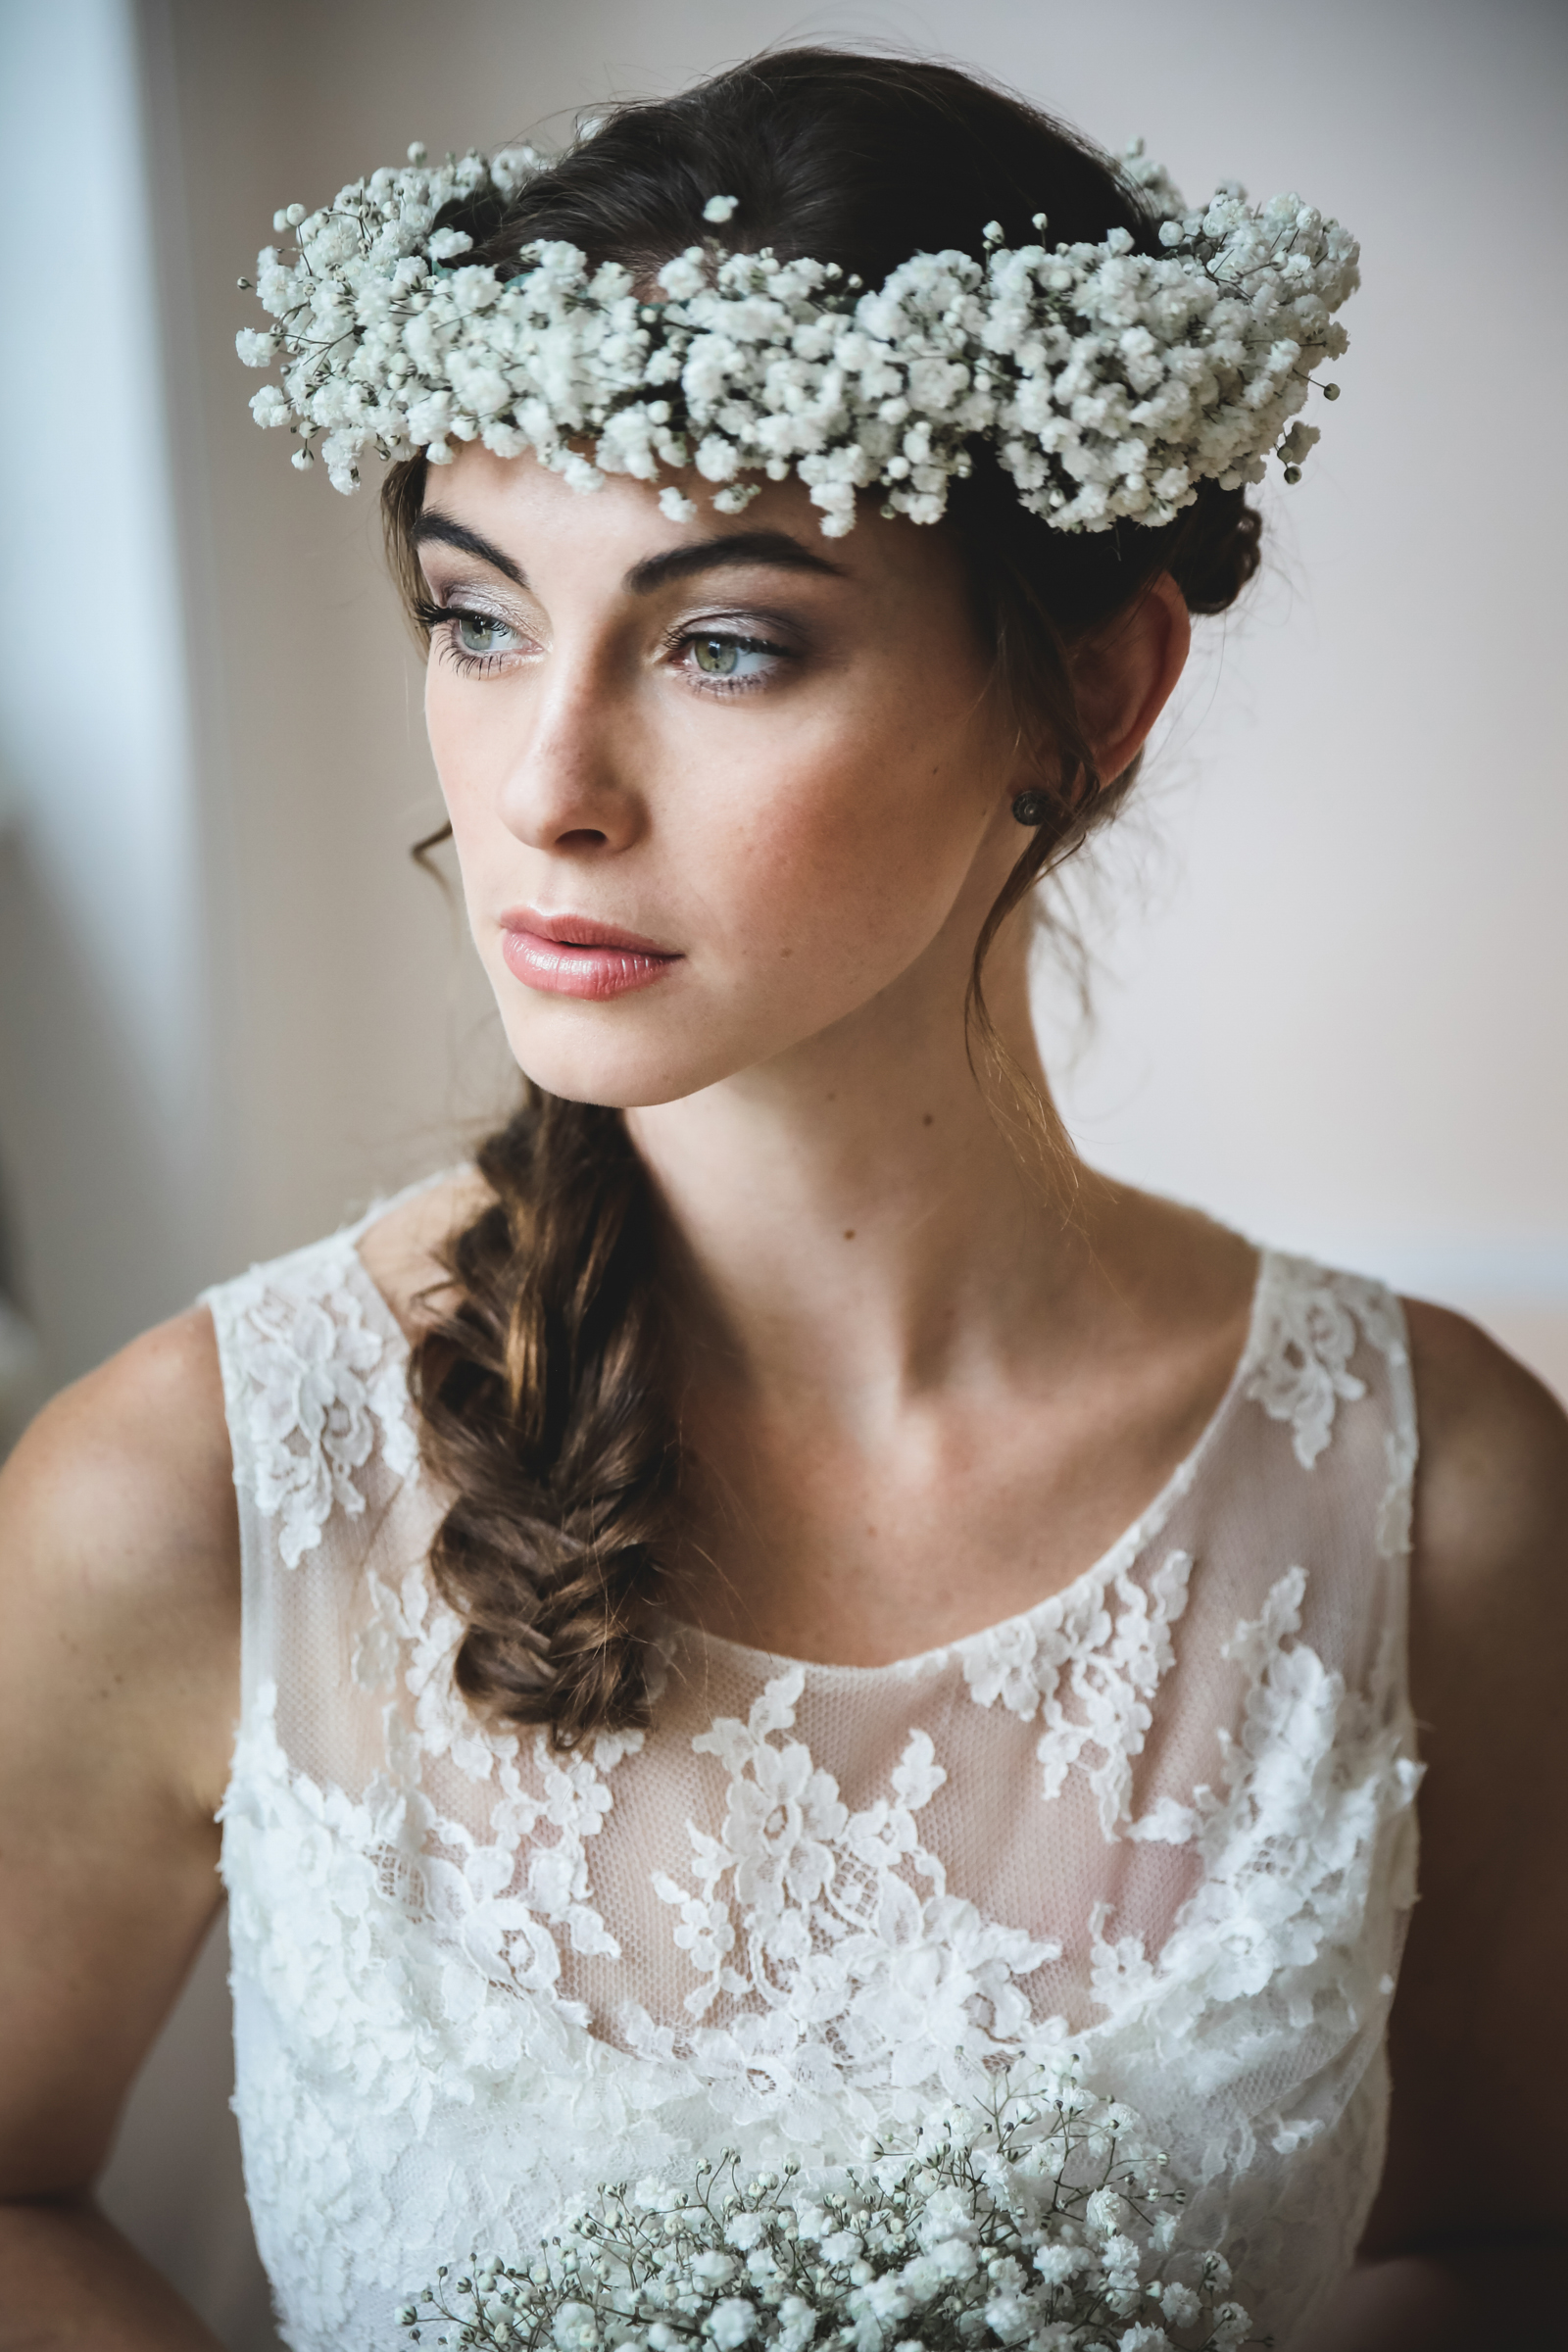 Simple floral crown of baby's breath blossoms photographed by Julien Laurent Georges - France